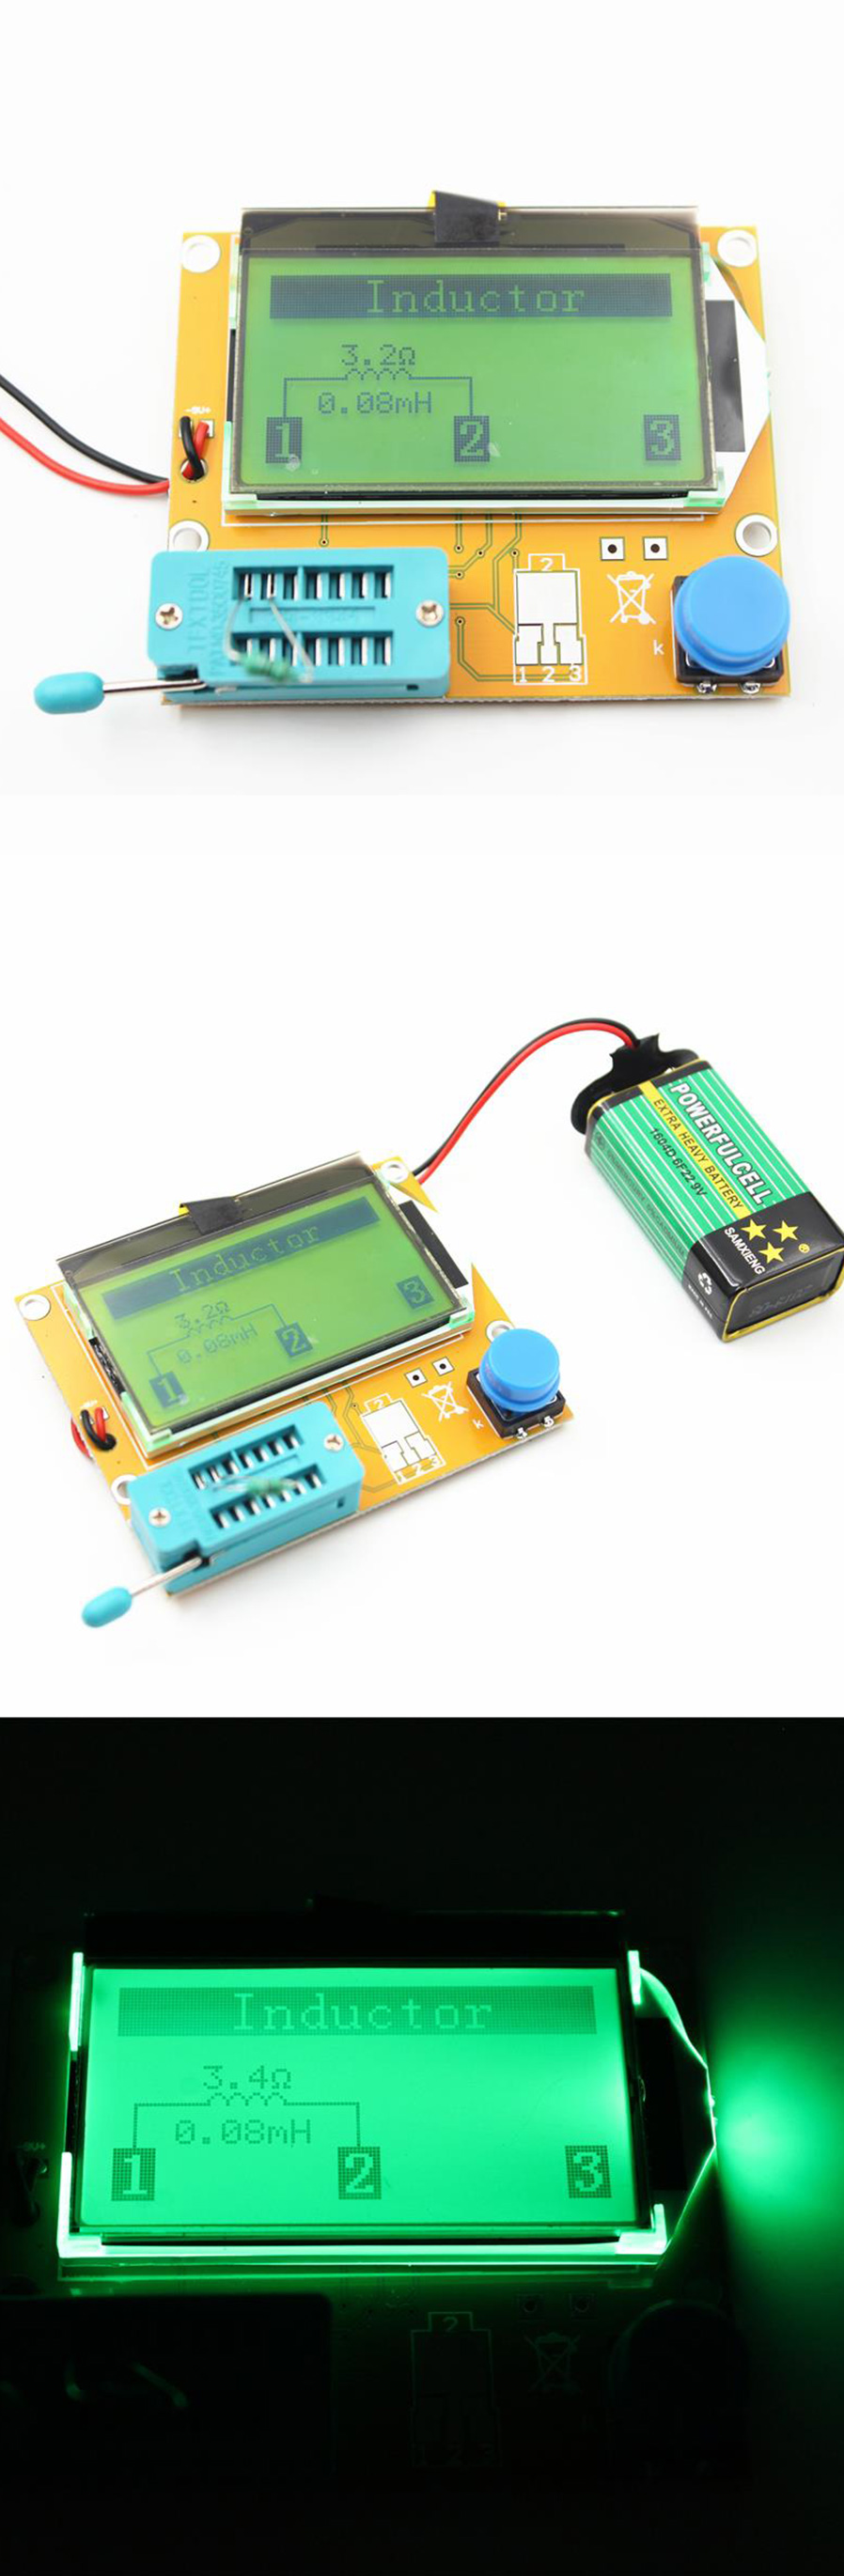 Lcr T4 Digital Transistor Tester Diode Triode Capacitance Esr Meter Auto Electric Bridge Resistance Inductance Resolution Of Measurement 01 Ohms The Highest Measured Value 50m Provided Testing Current Approx 6ma